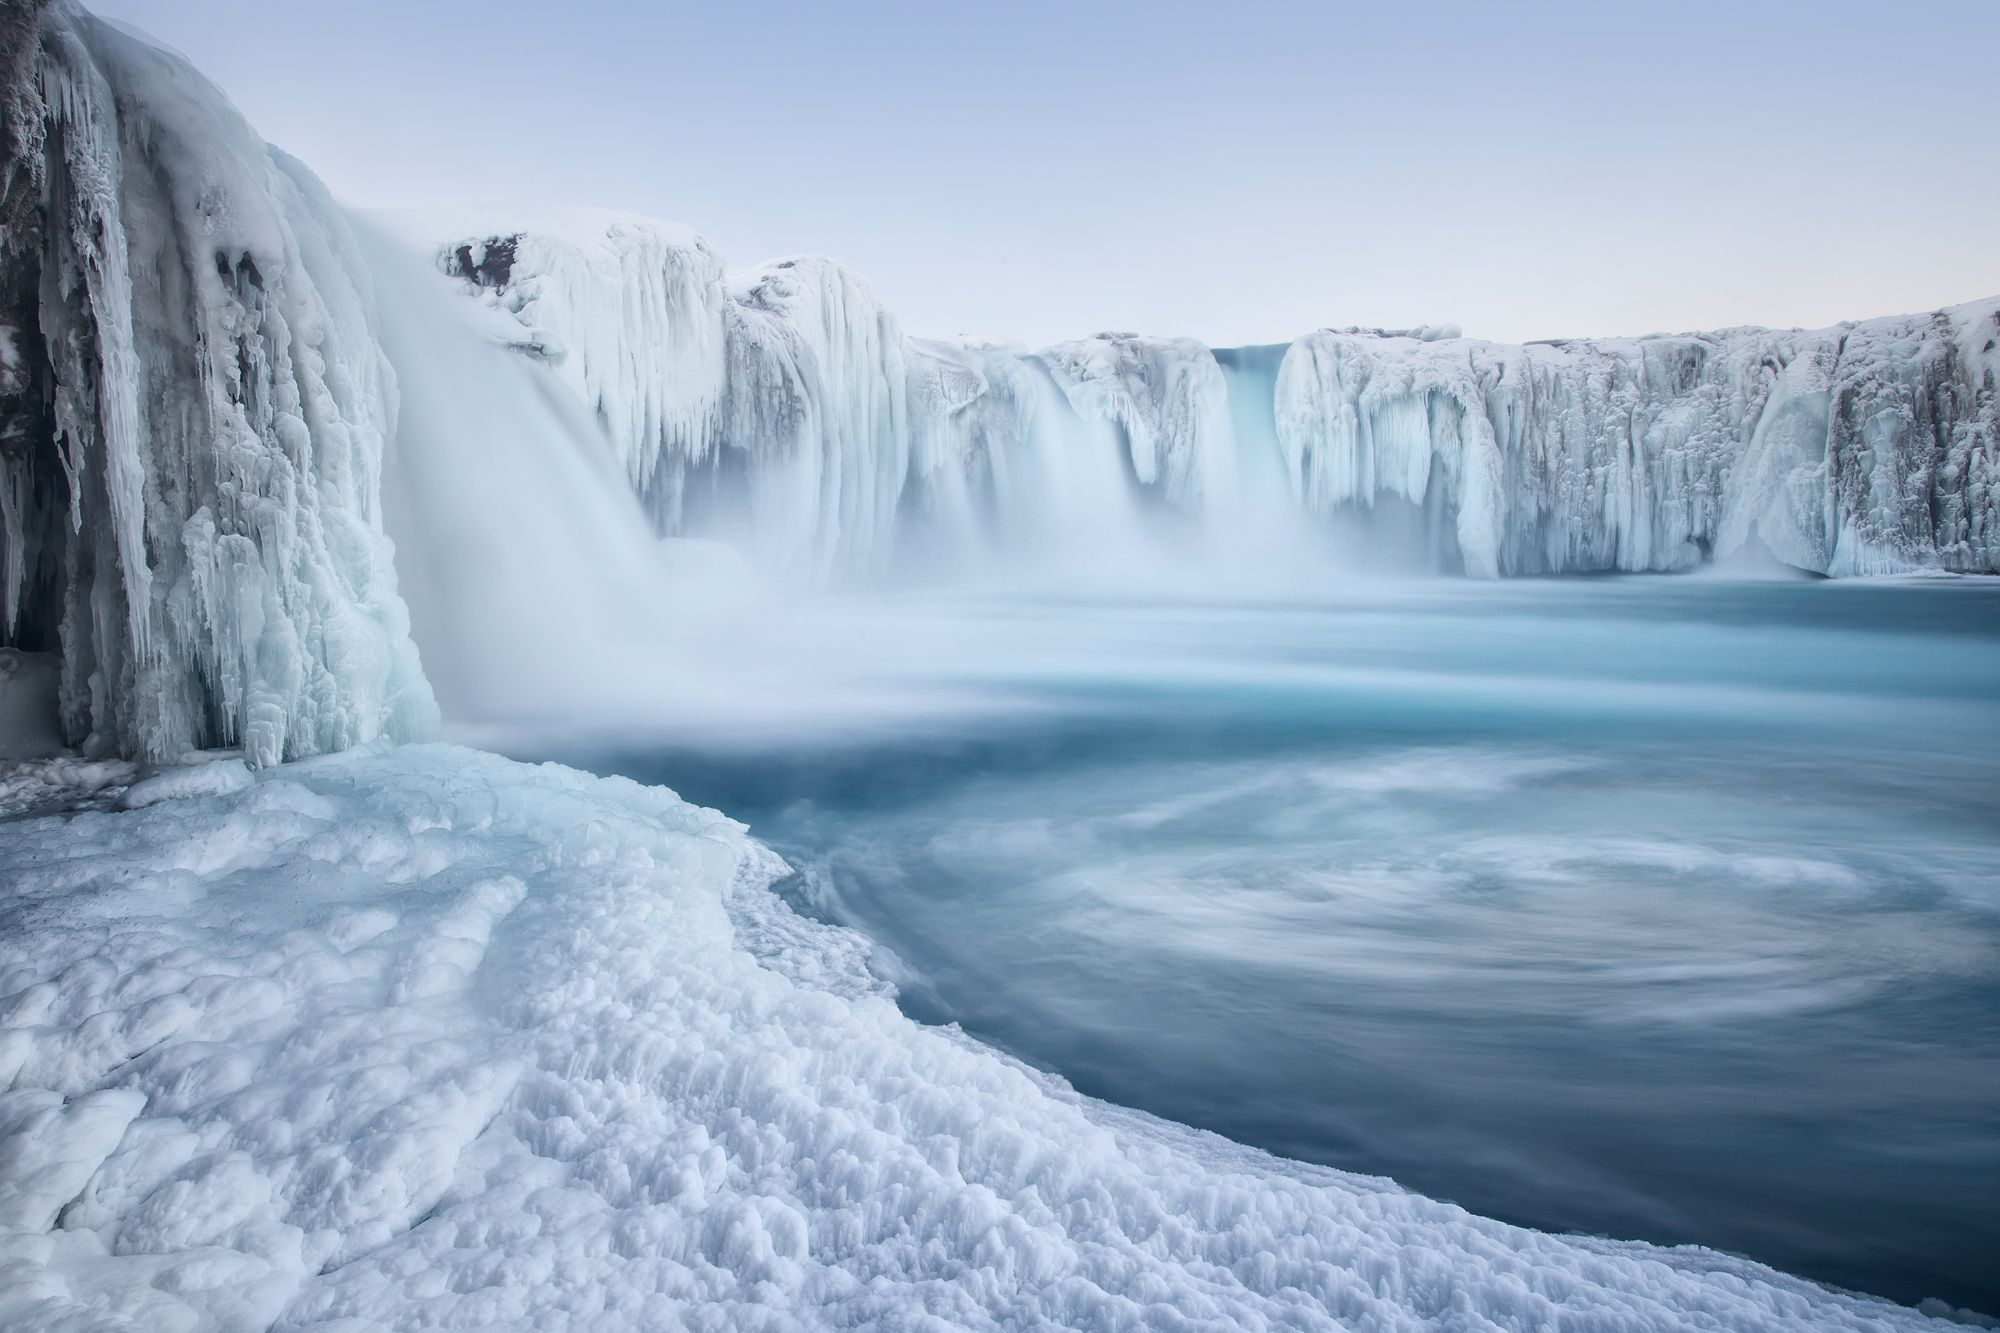 A 'Frozen' world: Amazing icy landscapes (With images) | Waterfall ...